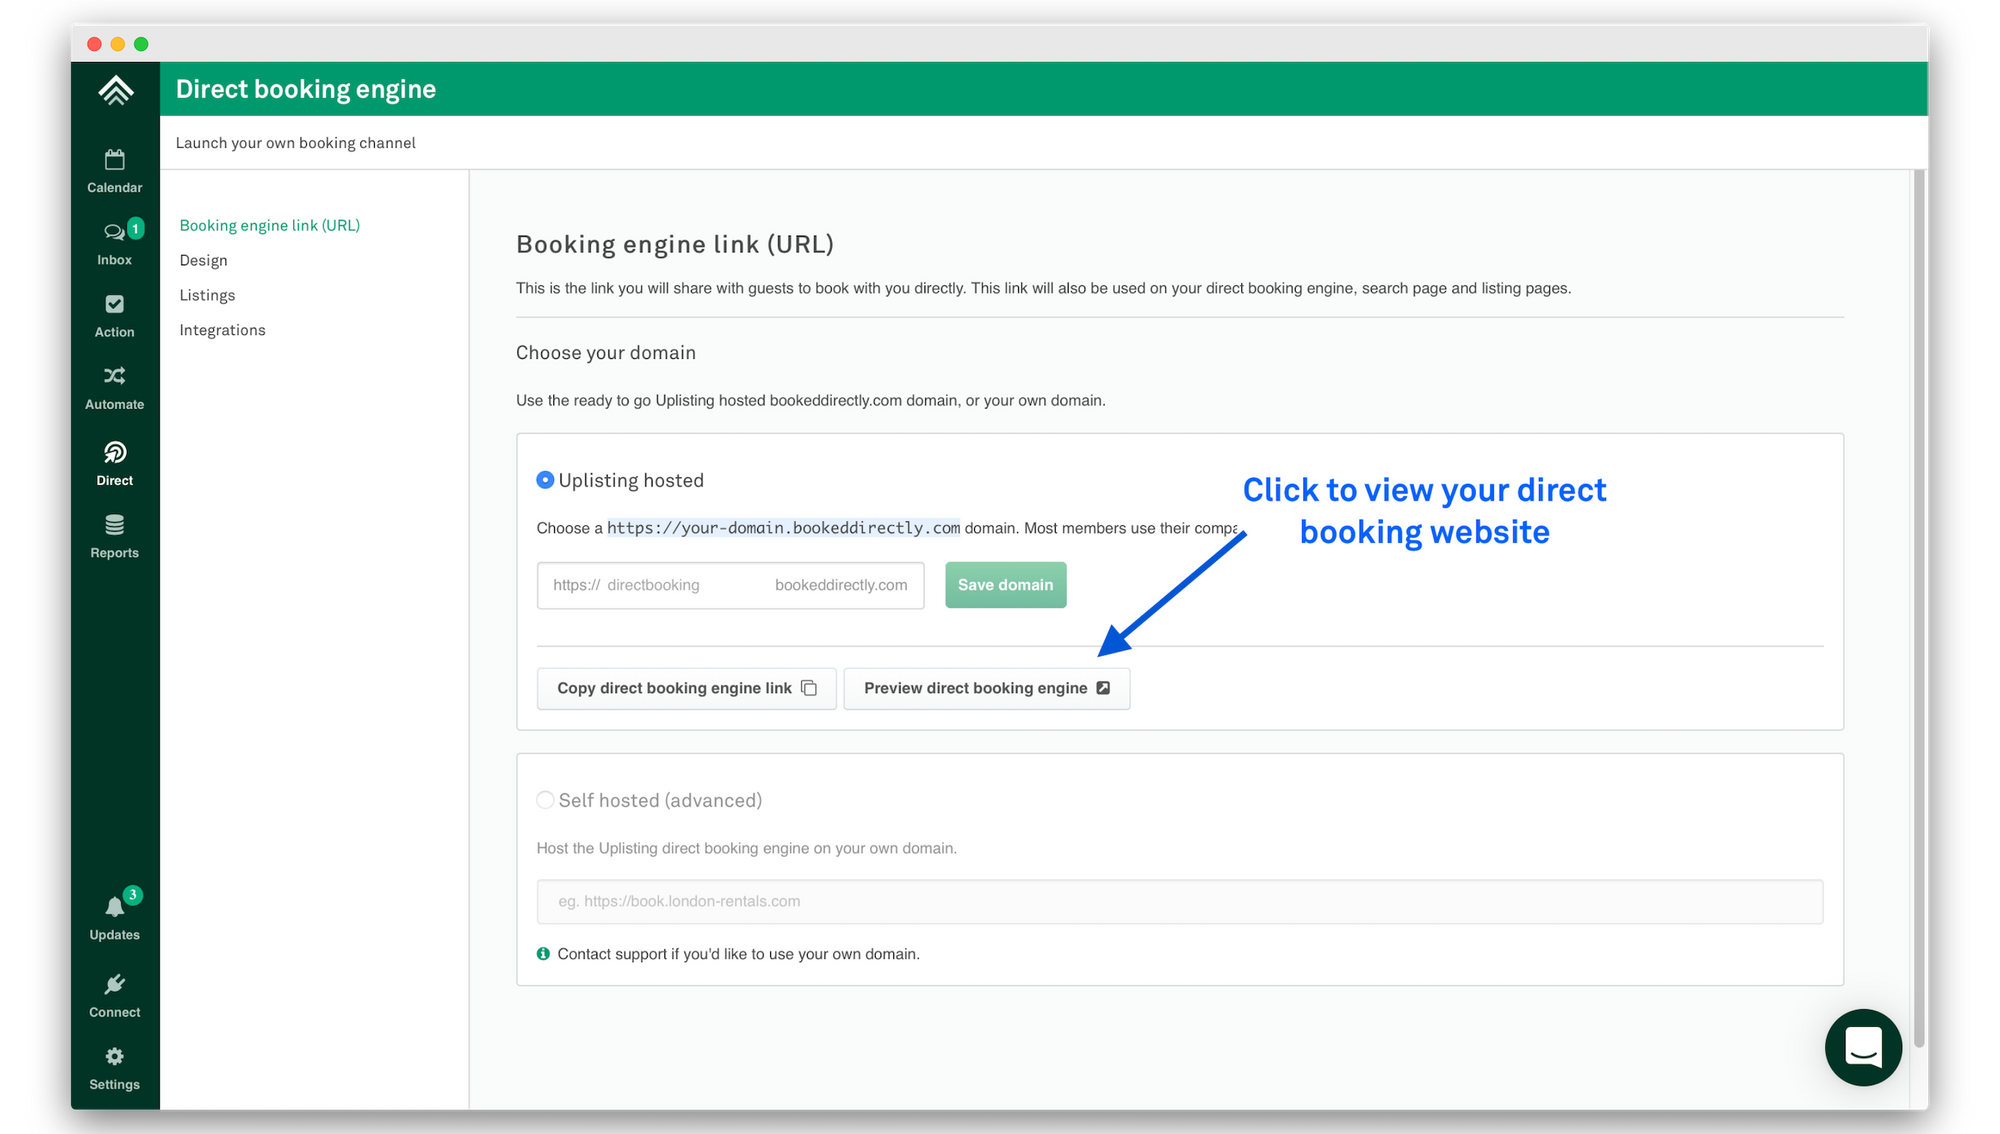 Preview direct booking engine